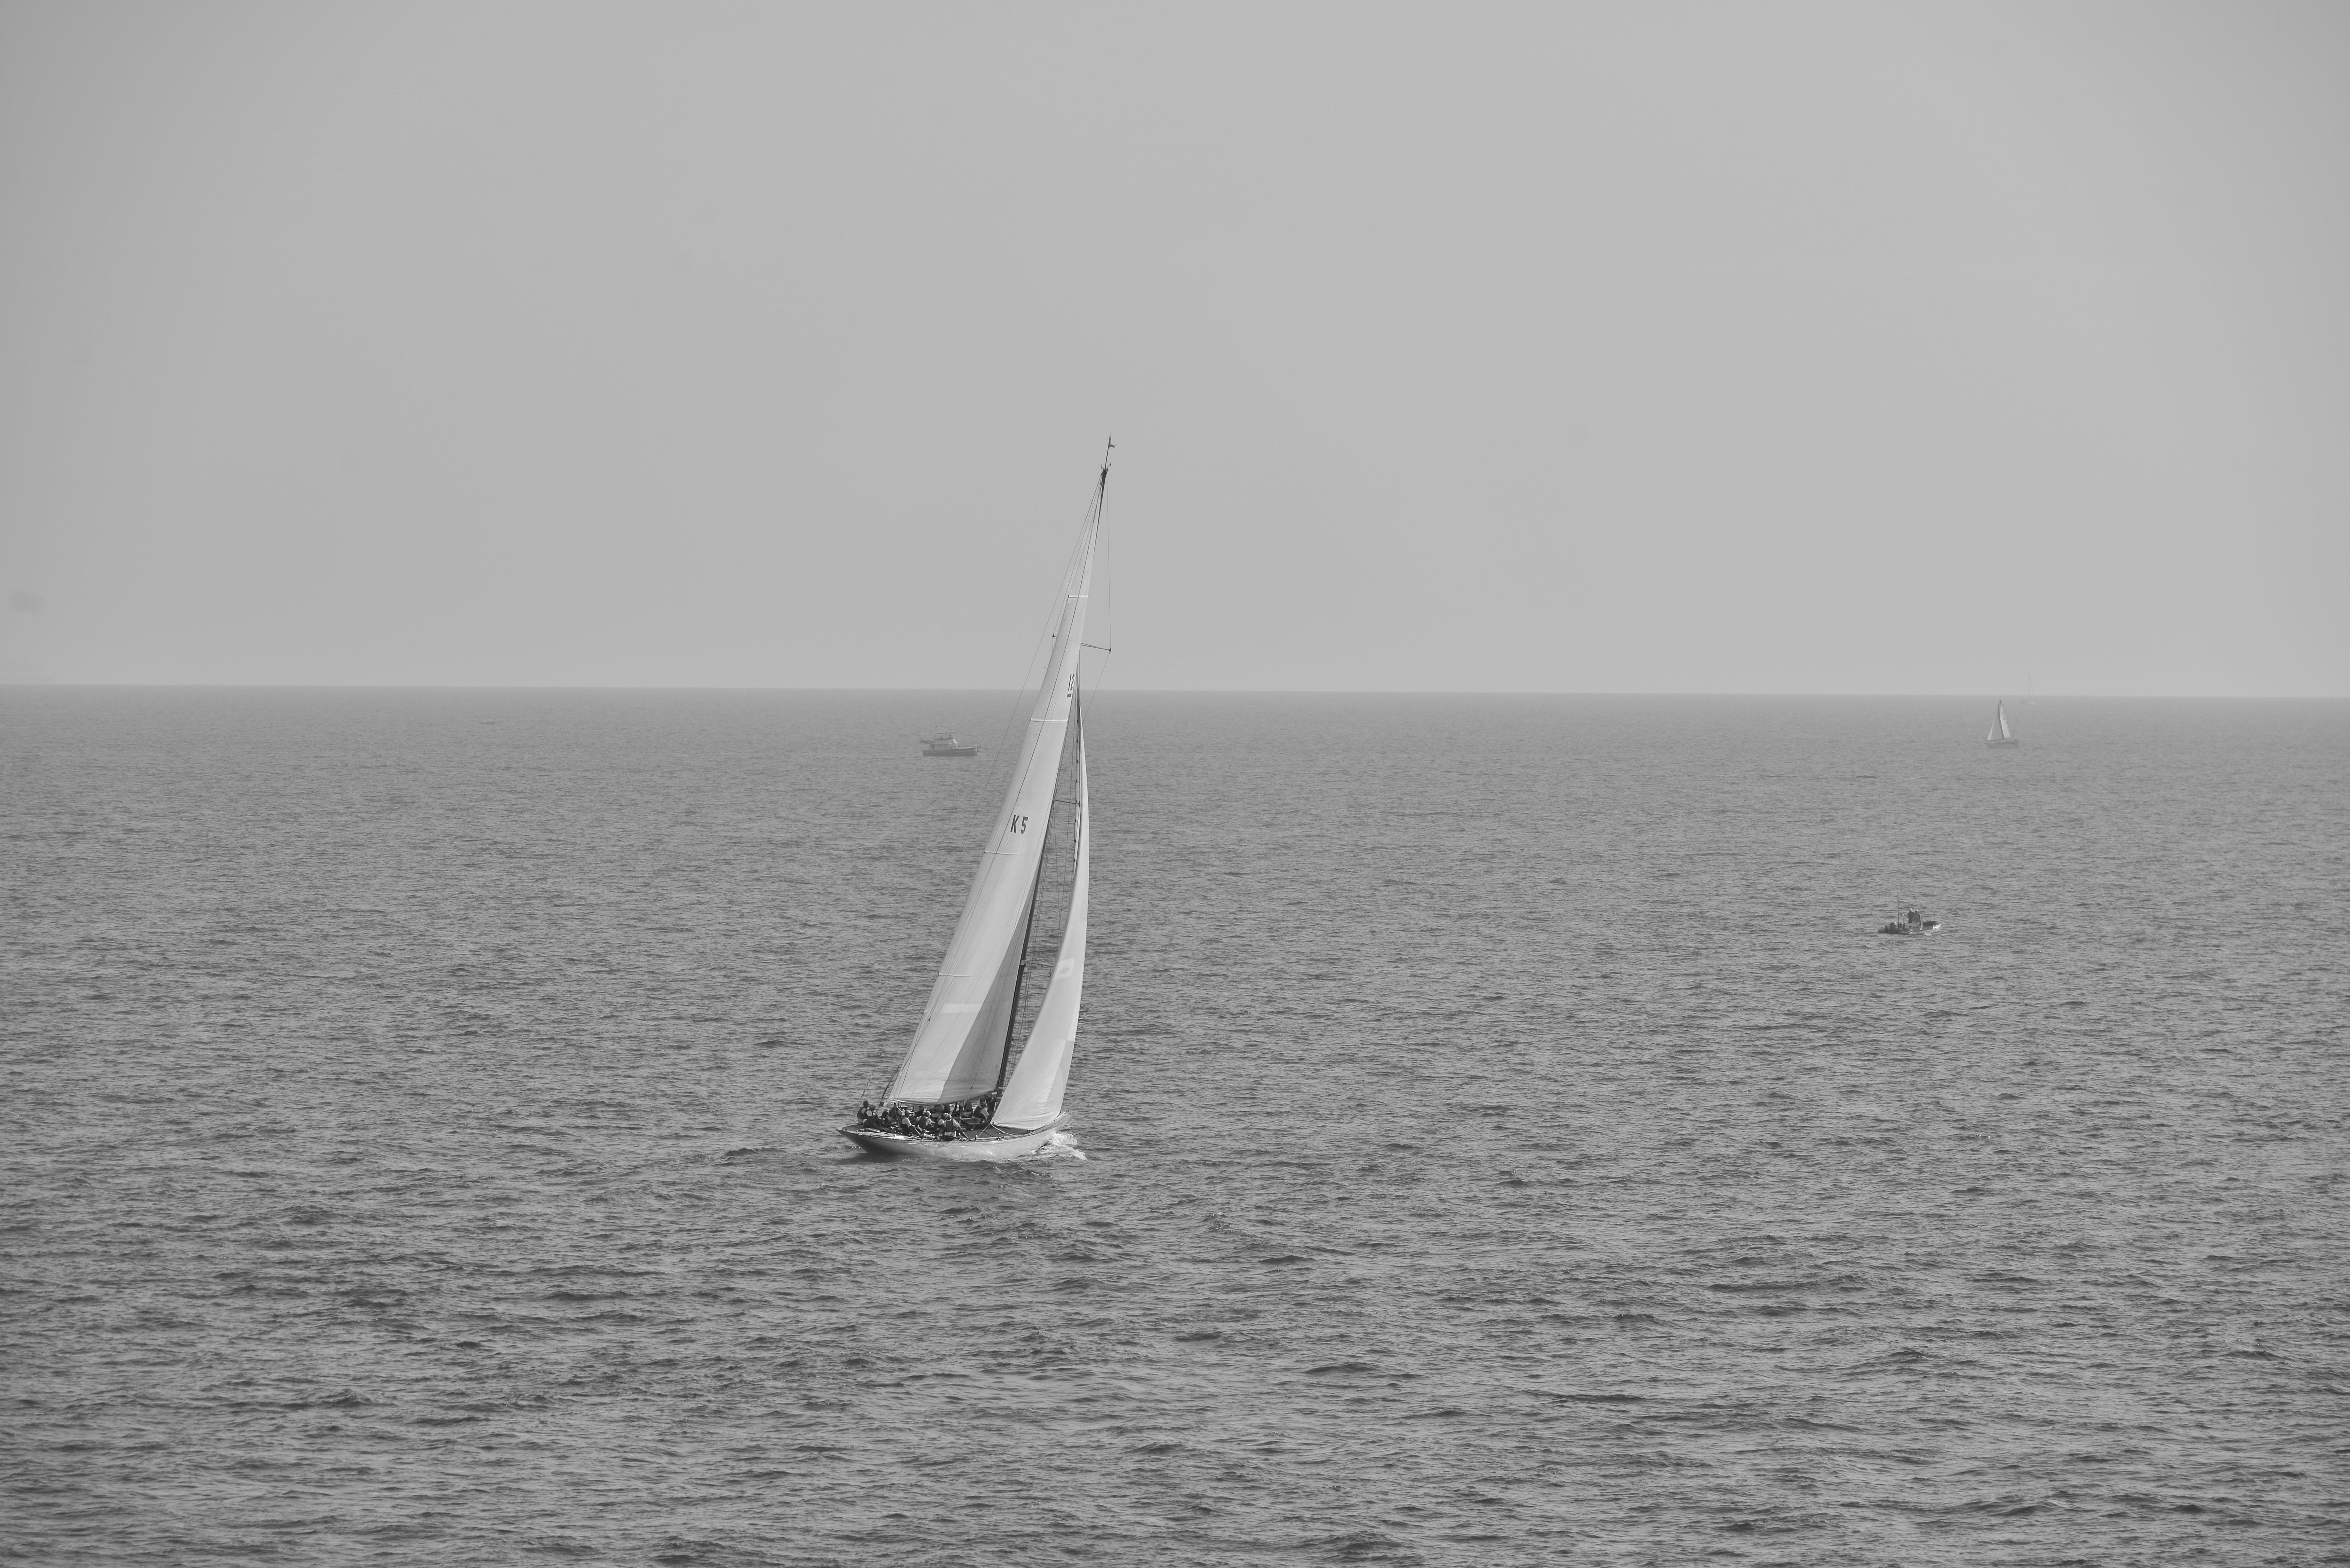 Grayscale Photography of Boat on Calm Body of Water